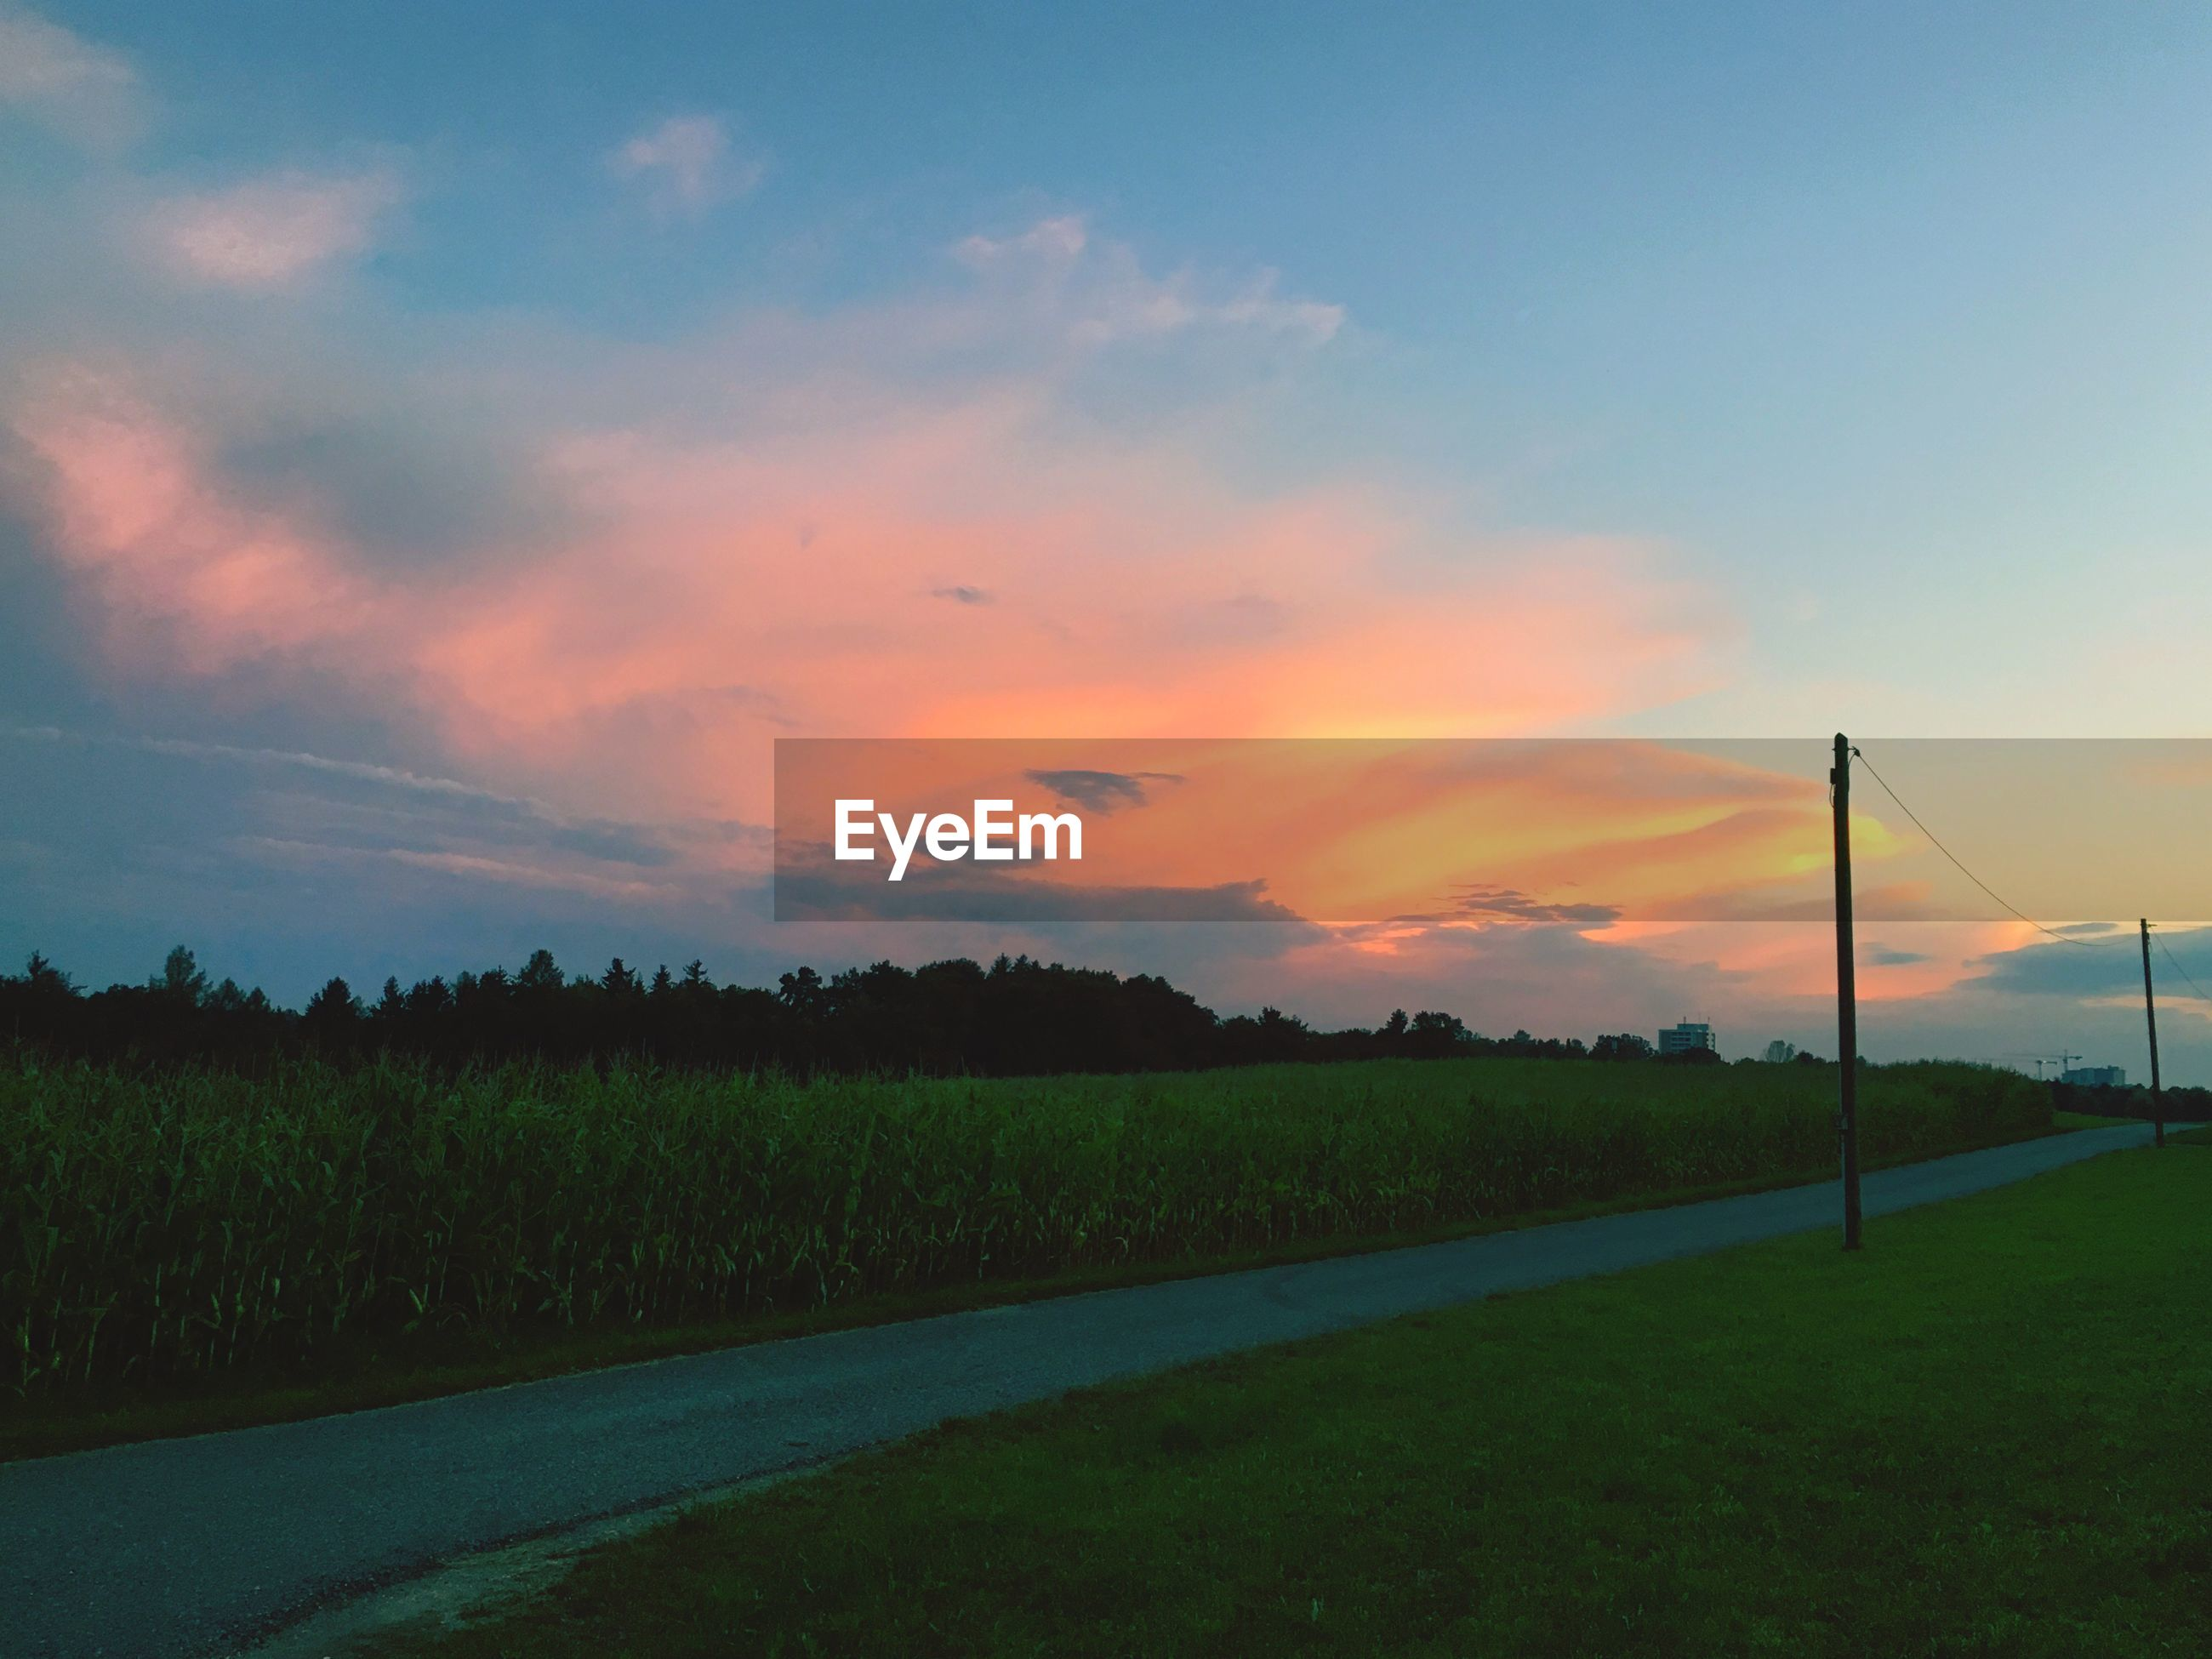 landscape, road, sunset, tranquil scene, transportation, scenics, tranquility, field, sky, beauty in nature, the way forward, nature, country road, cloud, outdoors, non-urban scene, cloud - sky, empty road, blue, rural scene, remote, countryside, solitude, long, diminishing perspective, farm